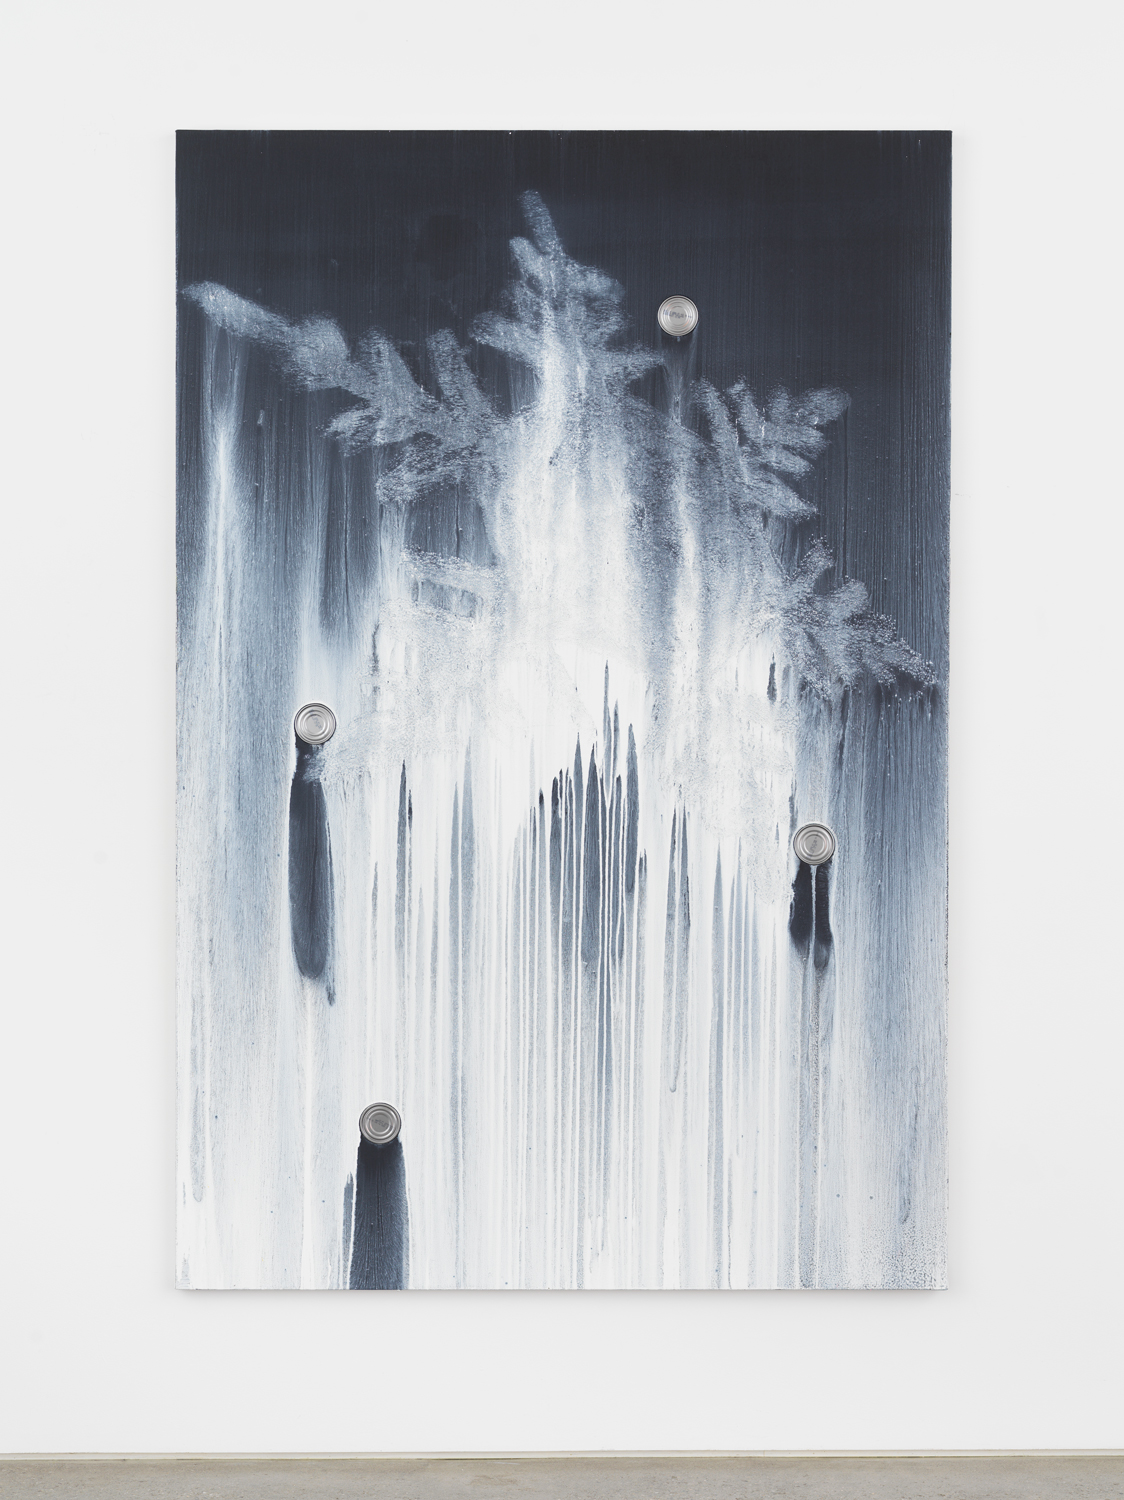 Alex Kwartler, White Snowflake (with tuna), 2019, Oil and pumice on linen with aluminum can, 72h x 48w in.